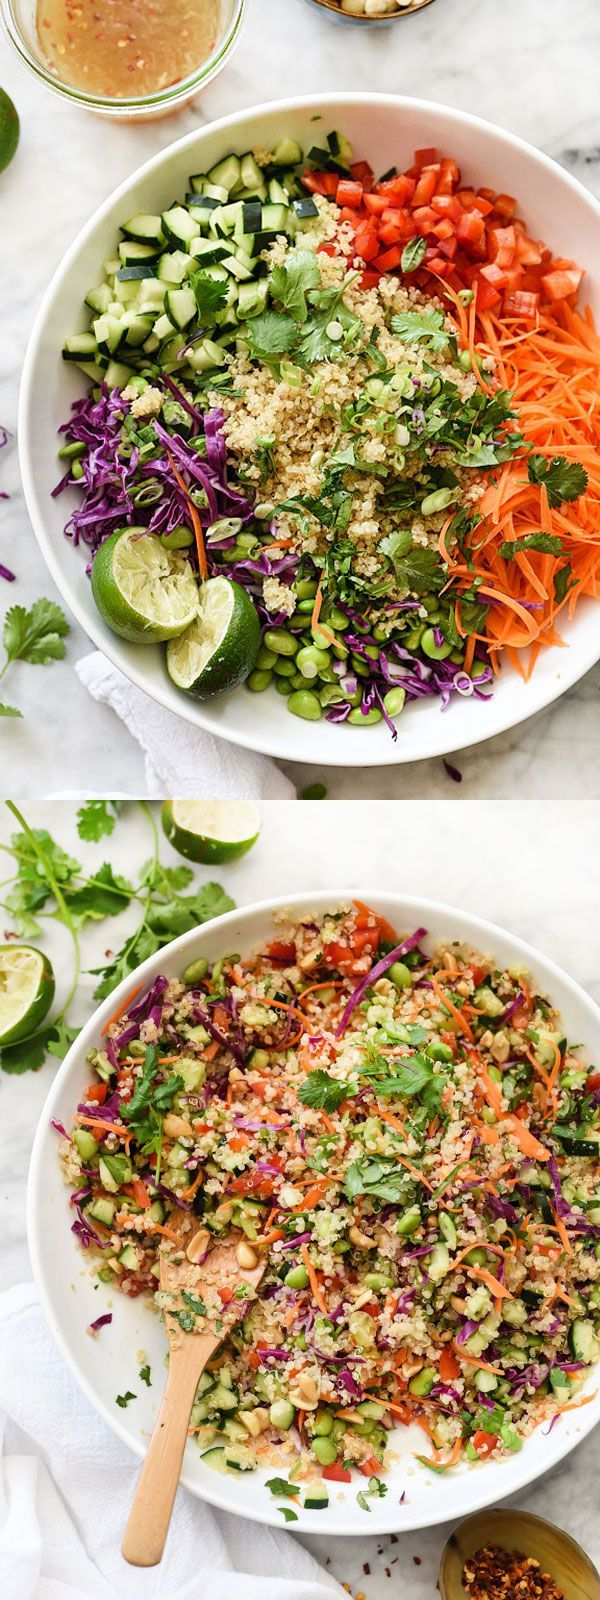 Thai Quinoa Salad by foodiecrush: This gluten-free, veg heavy and protein packed salad is a great side or a whole meal. #Salad #Quinoa #Thai #Healthy